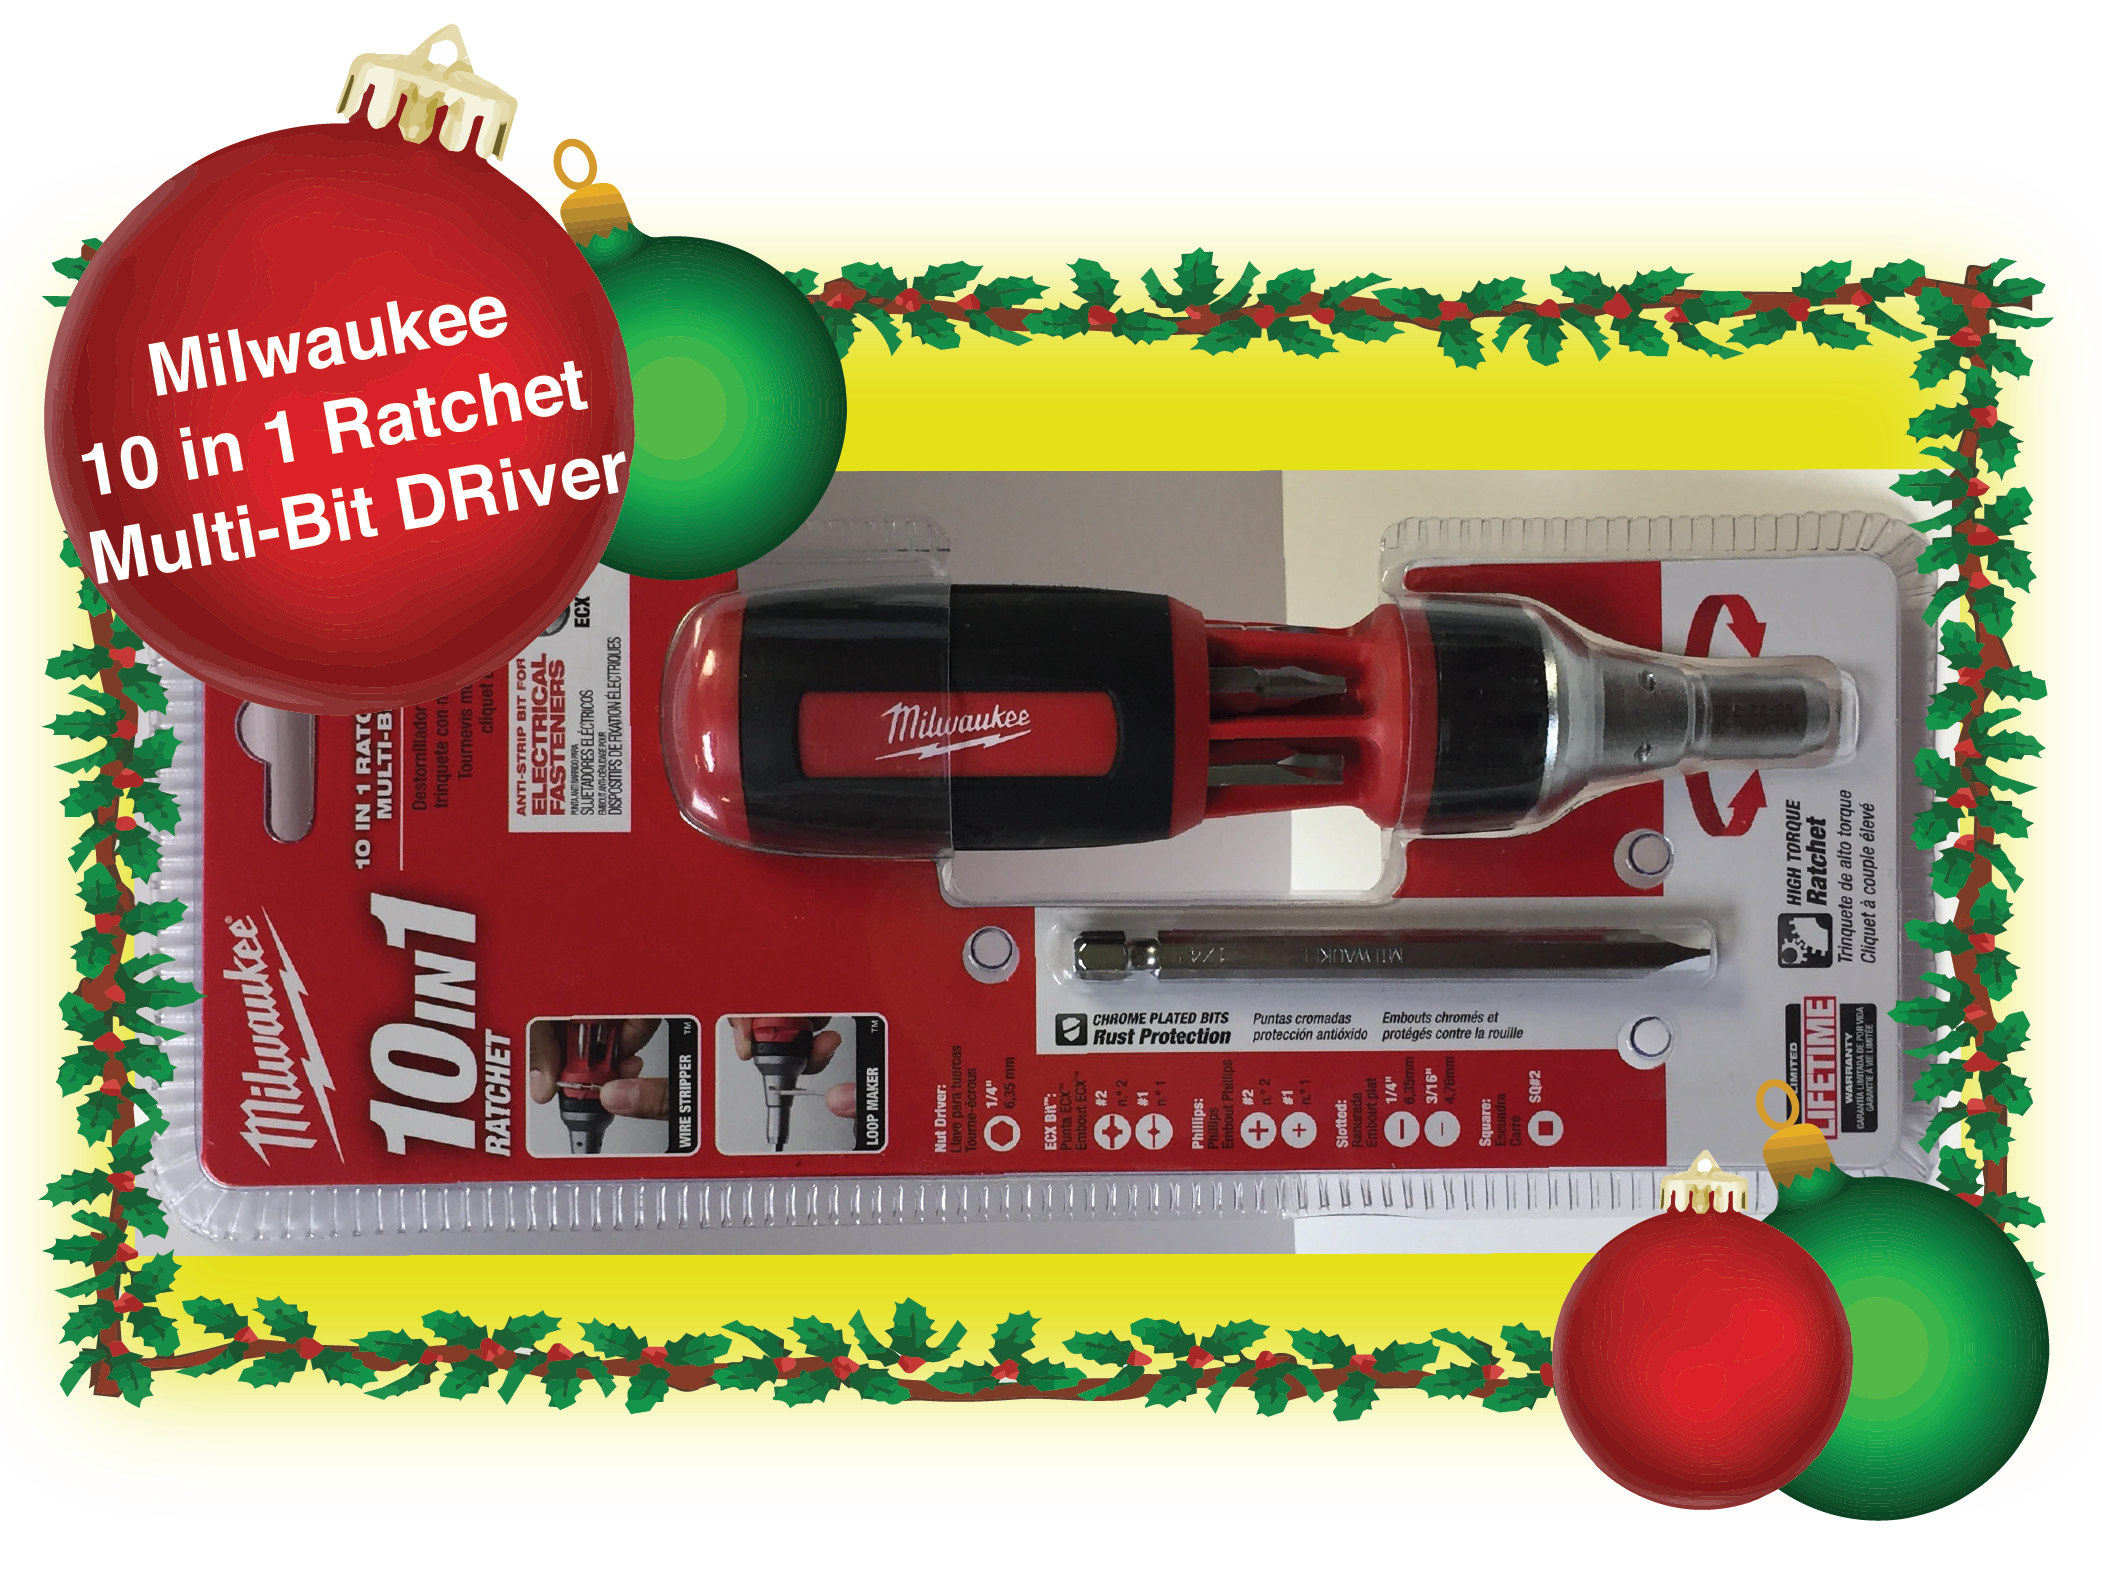 Milwaukee 10 in 1 Ratchet Multi-Bit Driver